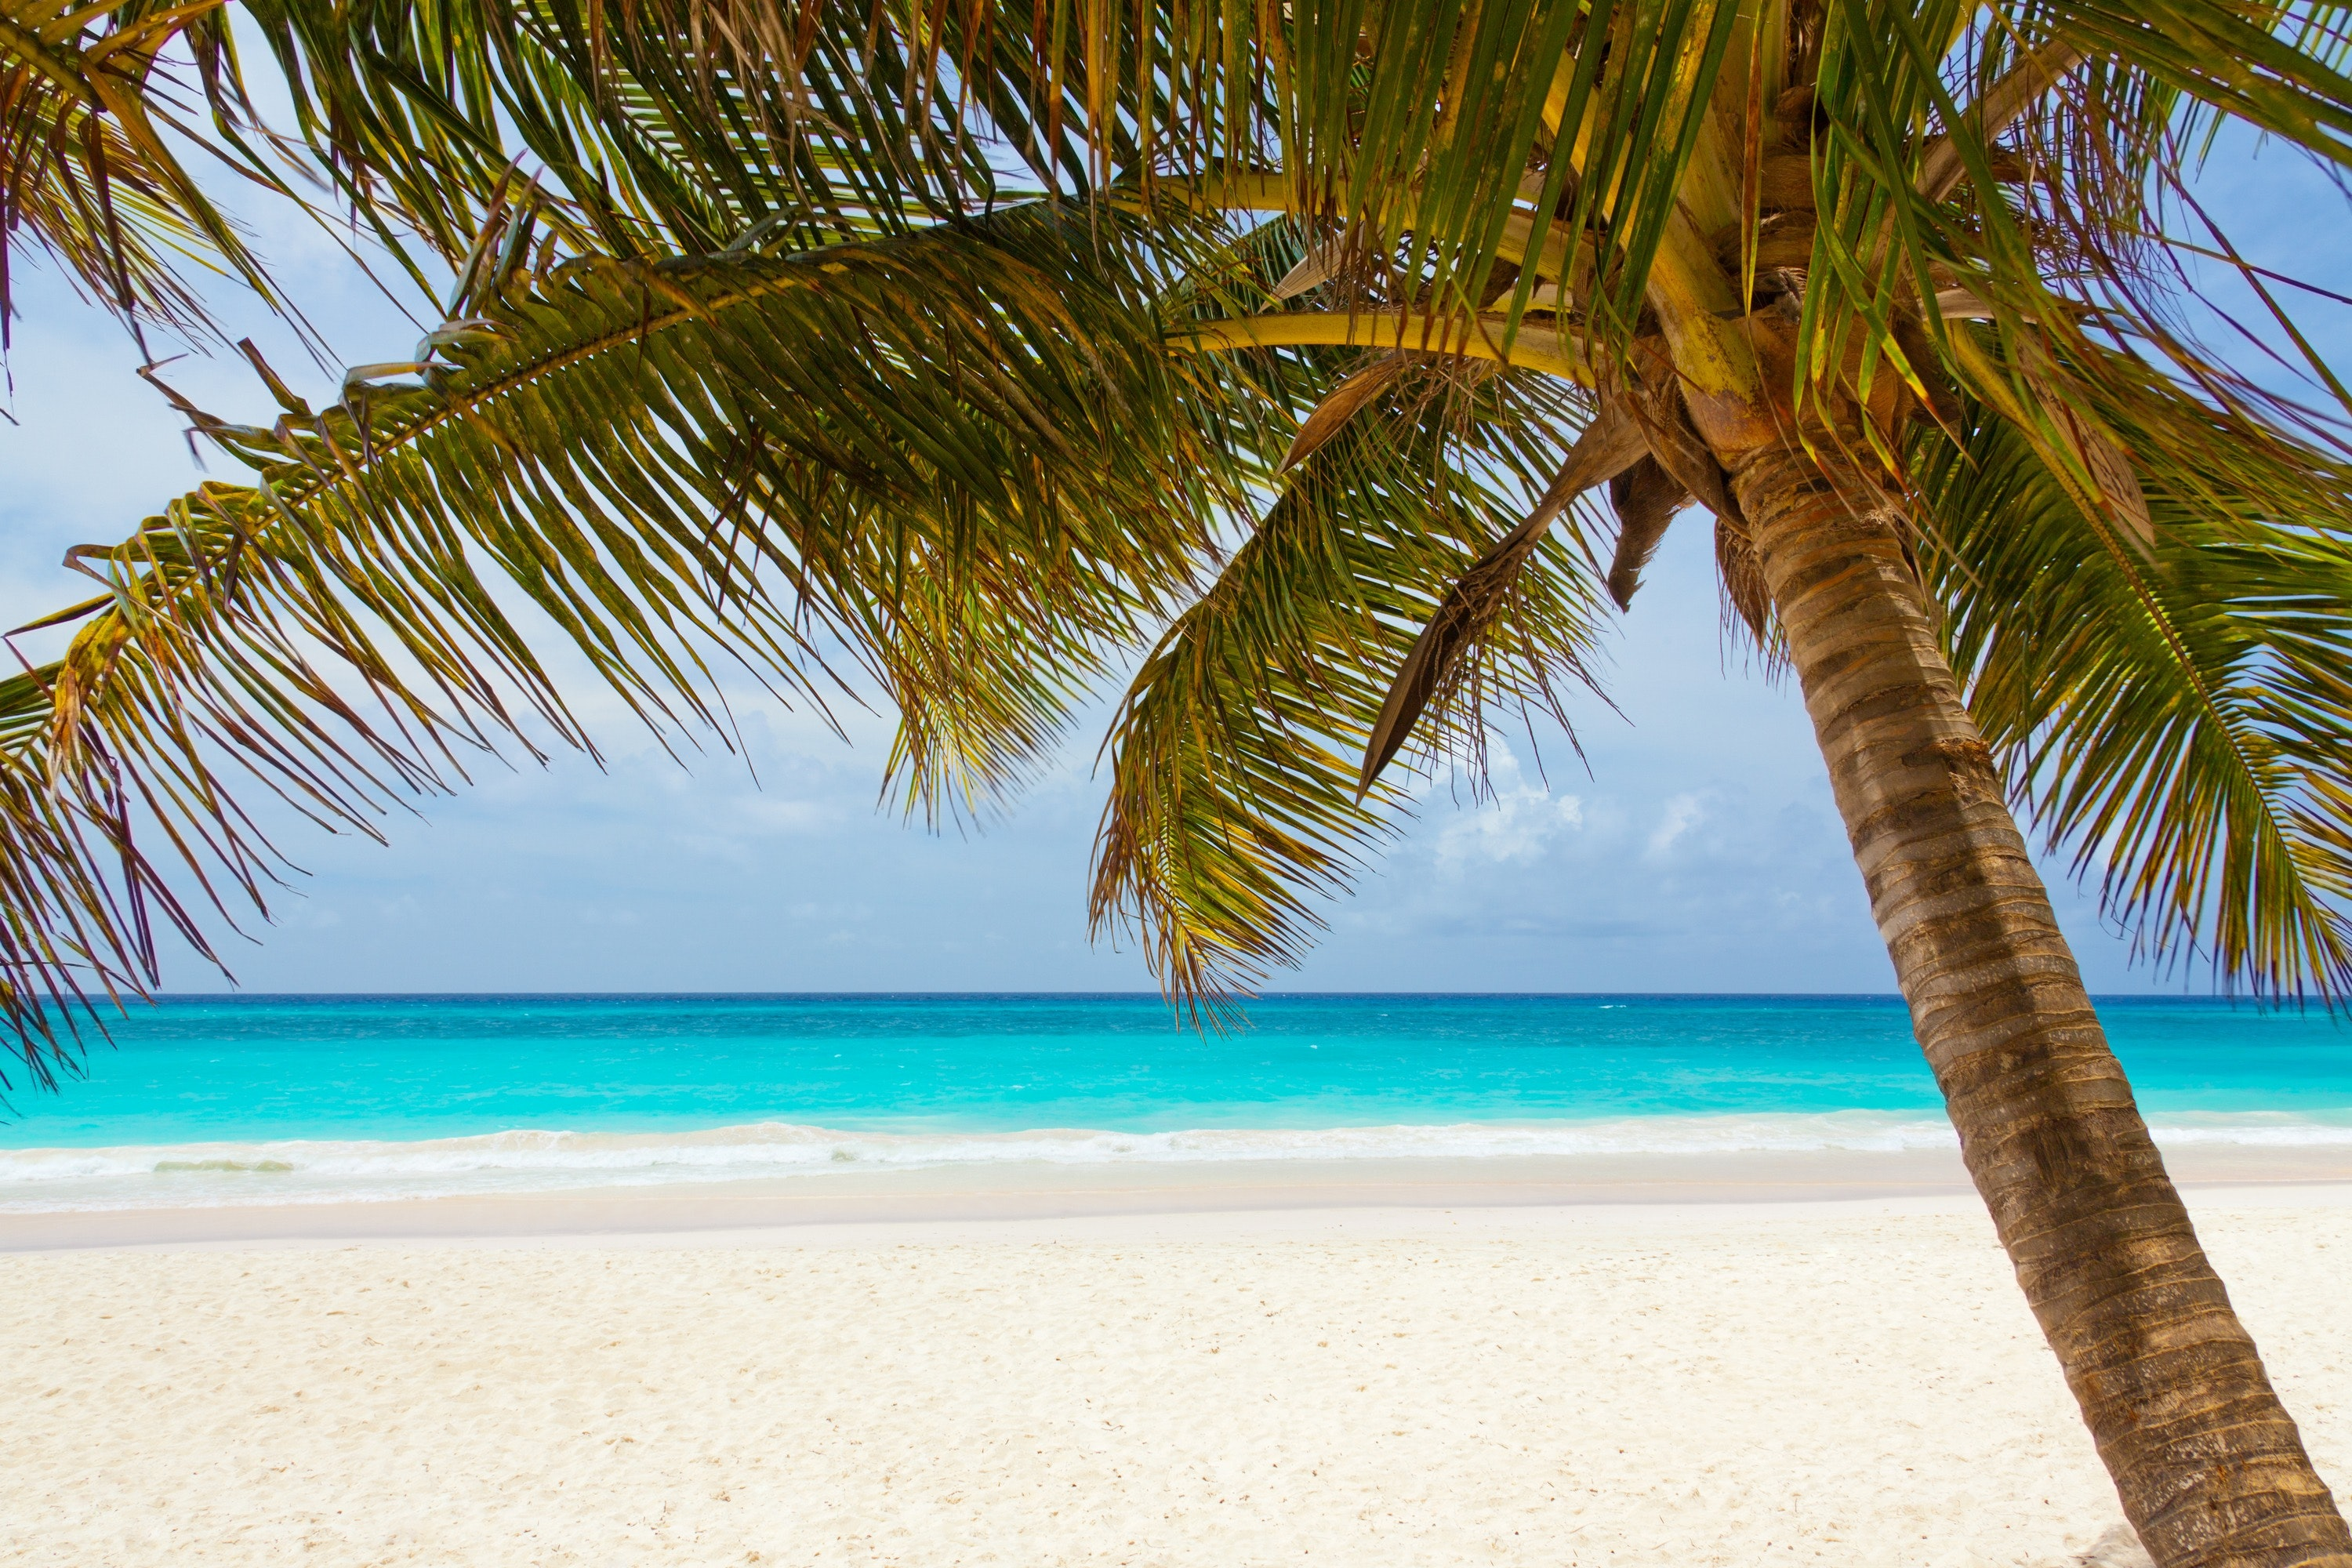 Green Palm Tree on Beach during Daytime, Beach, Landscape, Nature, Ocean, HQ Photo